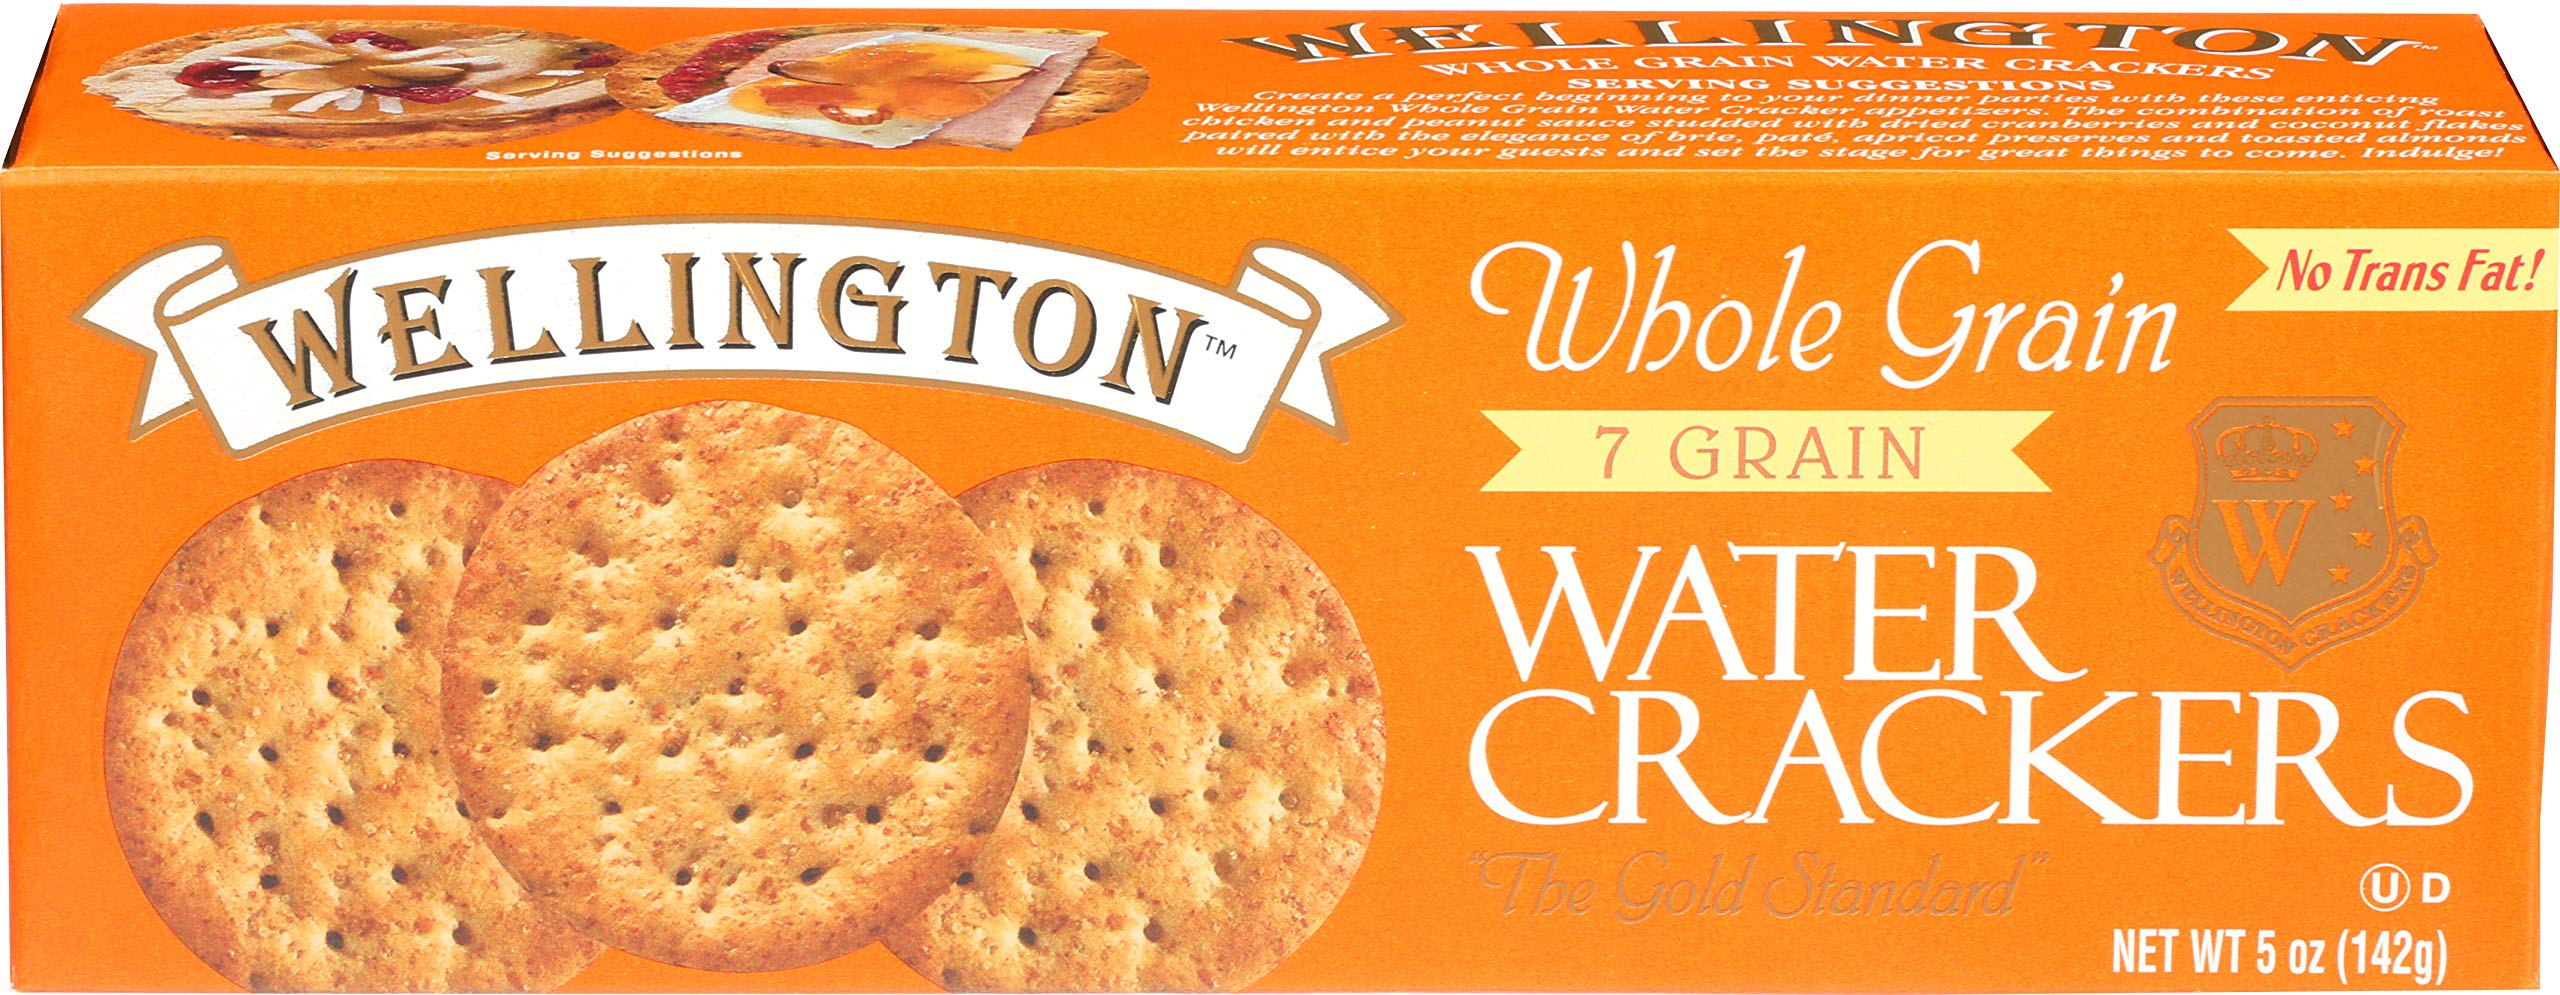 Wellington Whole Wheat 7 Grain Cracker, 5 Ounce Boxes (Pack of 12)